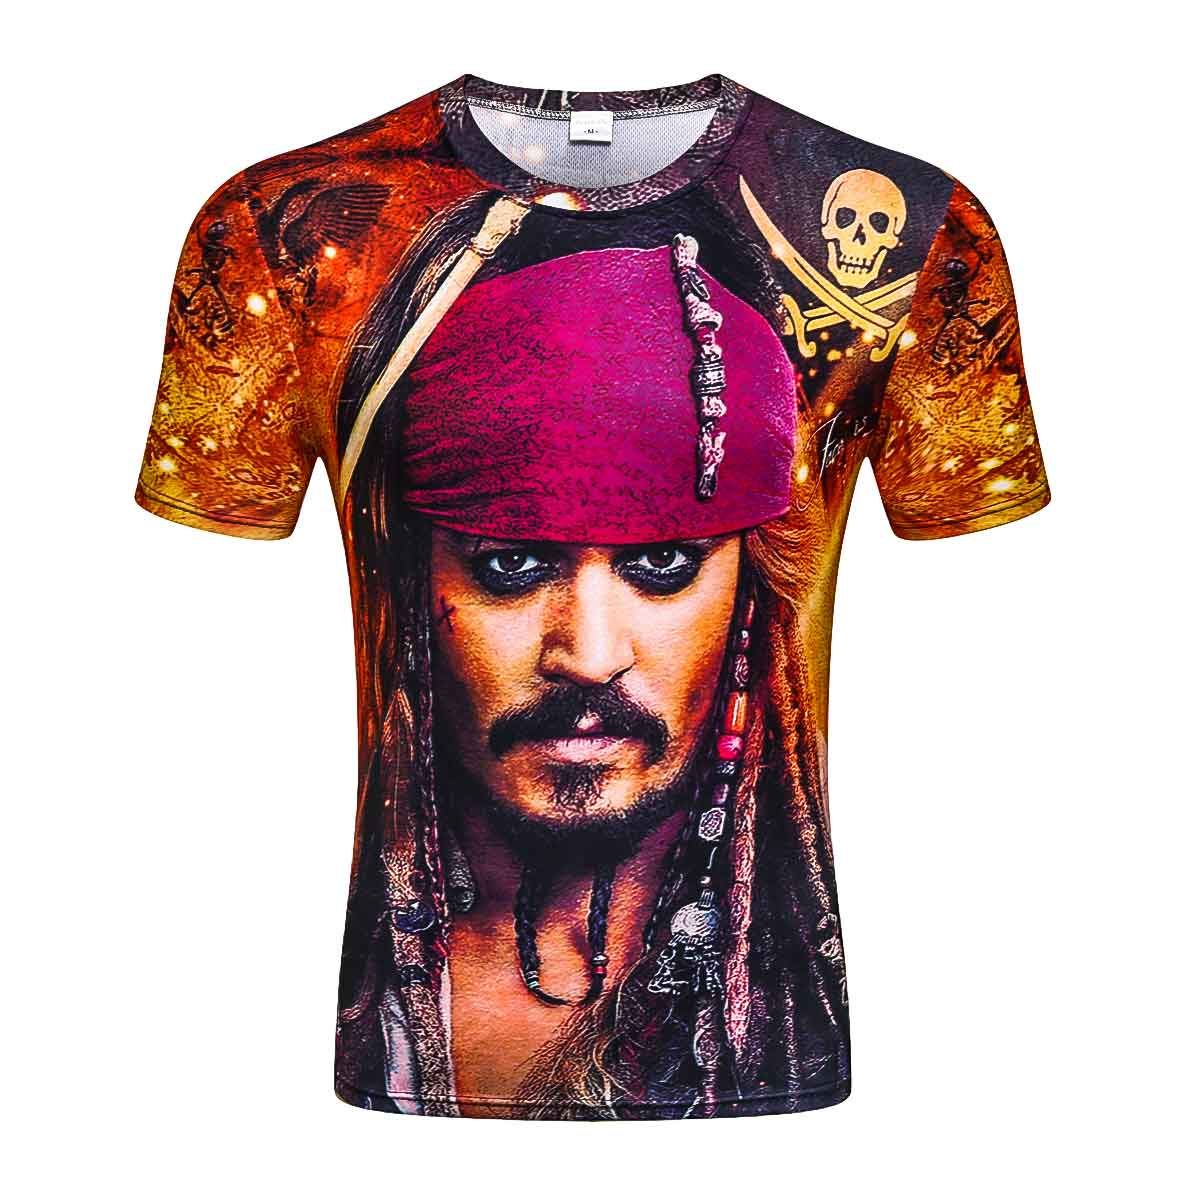 Summer New 3D Pirates of the Caribbean Mens Short Sleeve T-shirt 3DT Shirts High Quality Brand Clothing